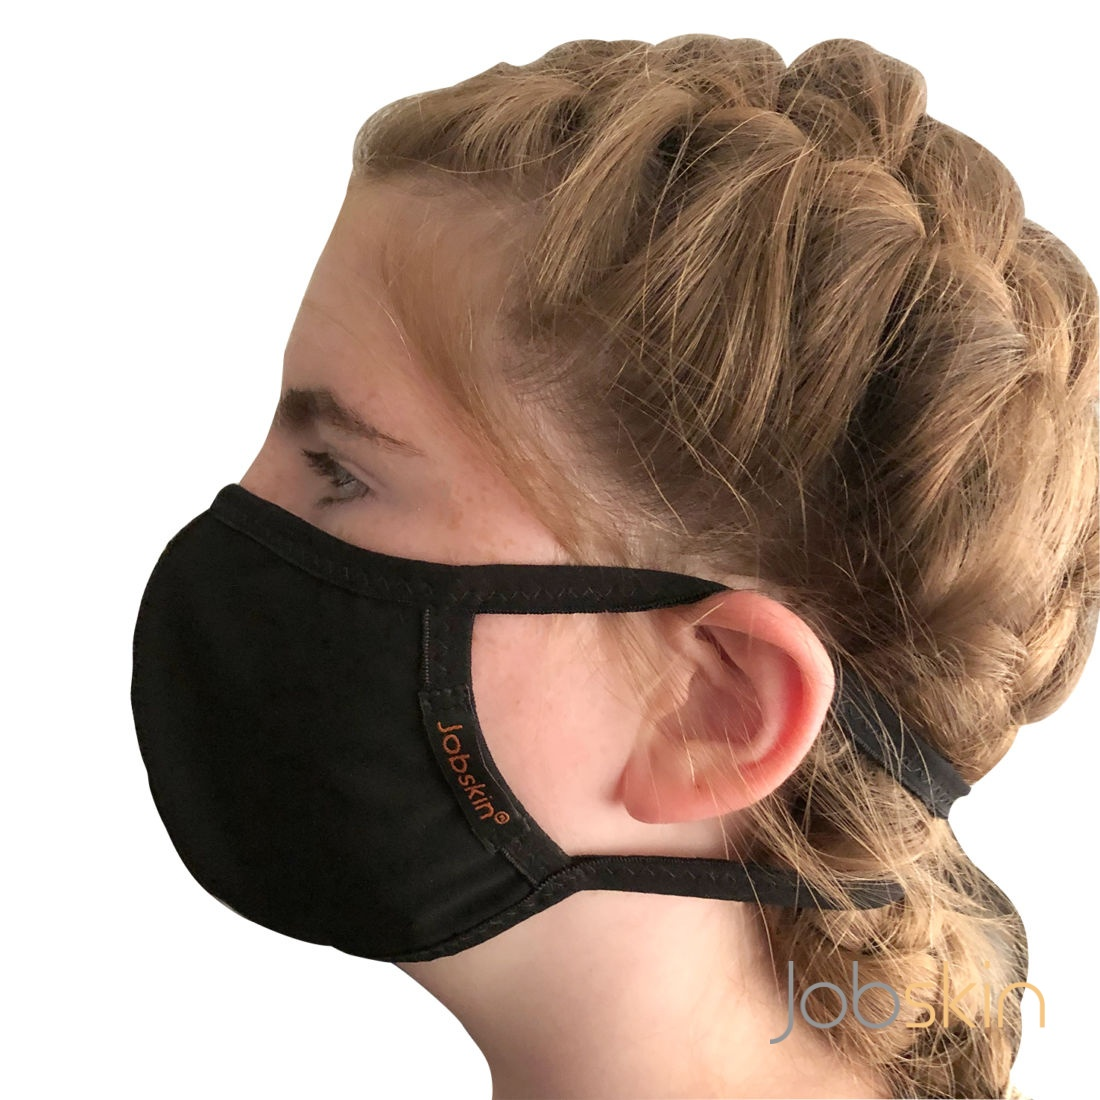 Black Powernet face mask